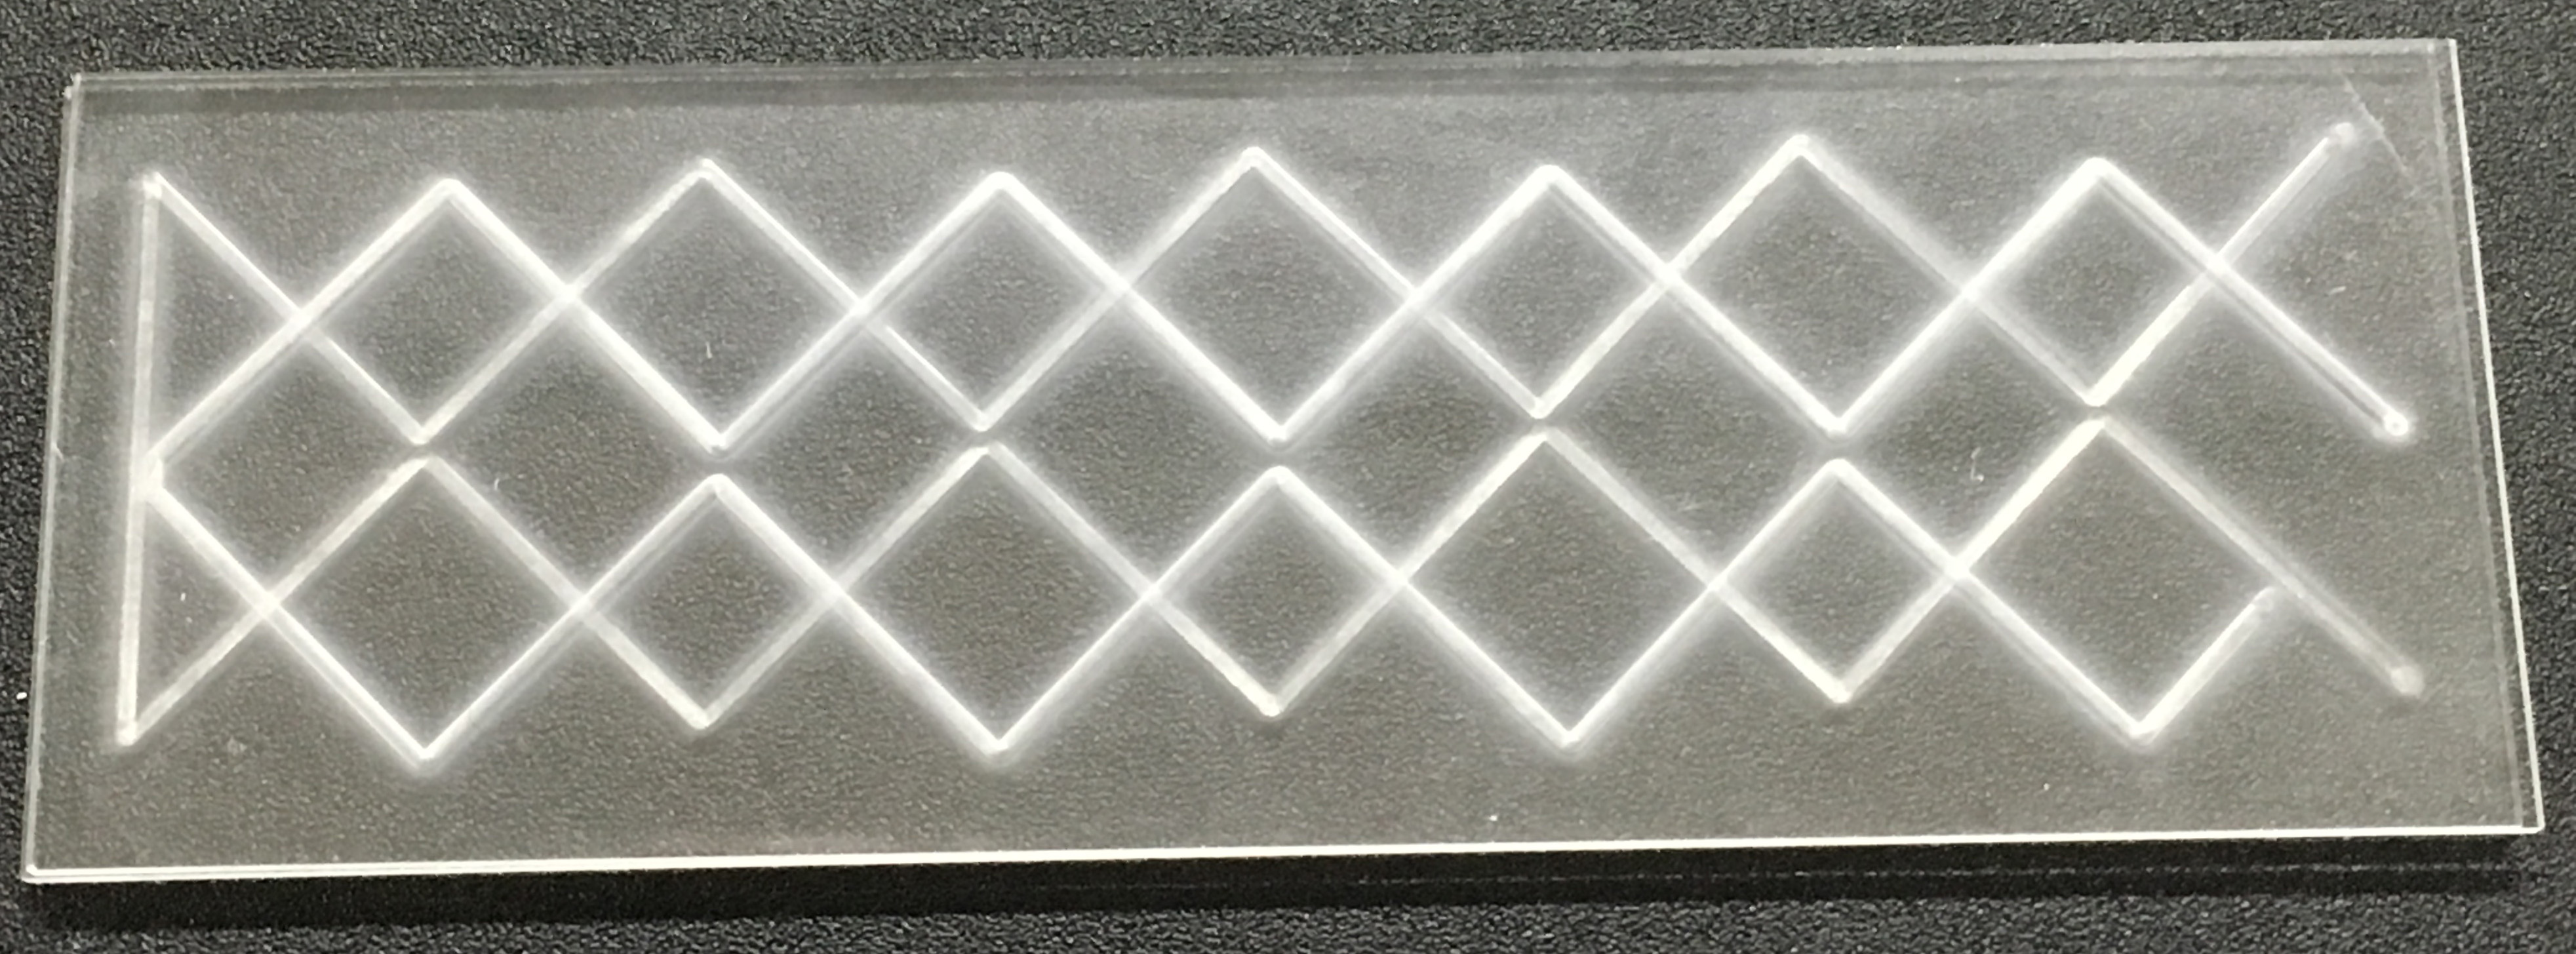 Etch channels of precise depth into glass slides for microfluidics using micro-precision sandblasting.